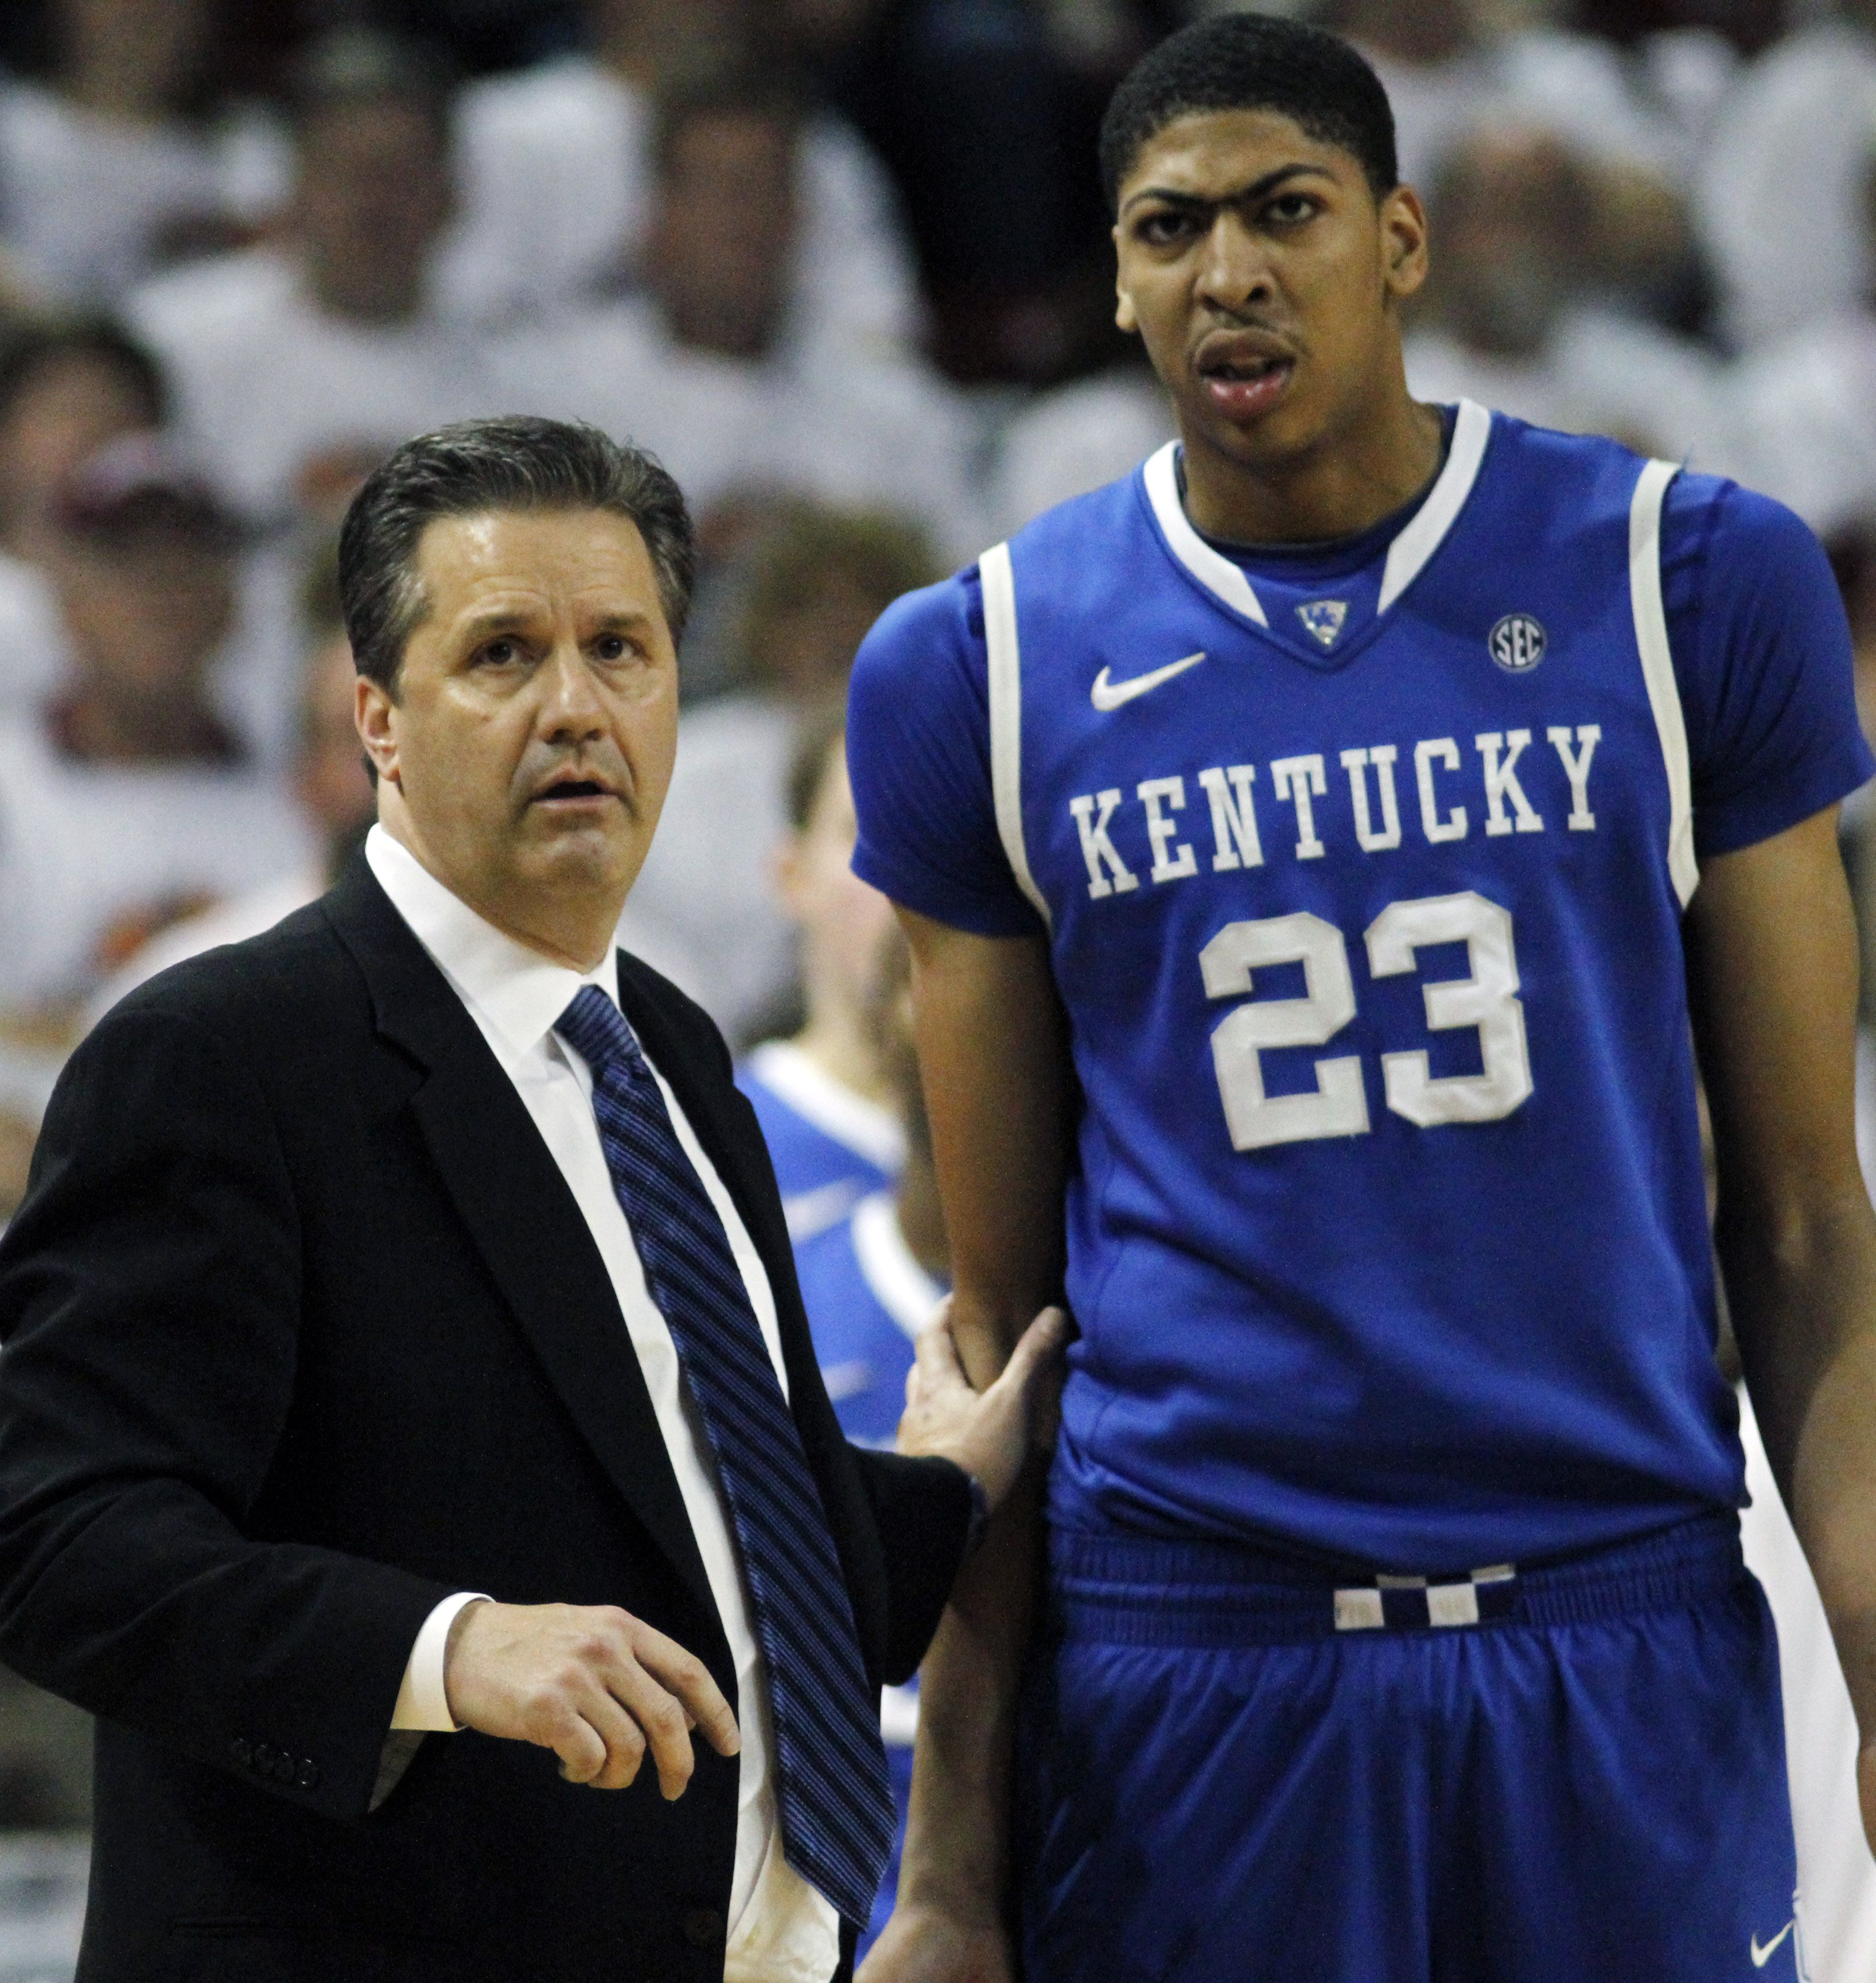 Kentucky basketball coach John Calipari and forward Anthony Davis (23) express concern early in the second half of their NCAA college basketball game against Mississippi State in Starkville, Miss., Tuesday, Feb. 21, 2012. No. 1 Kentucky won 73-64. (AP Pho